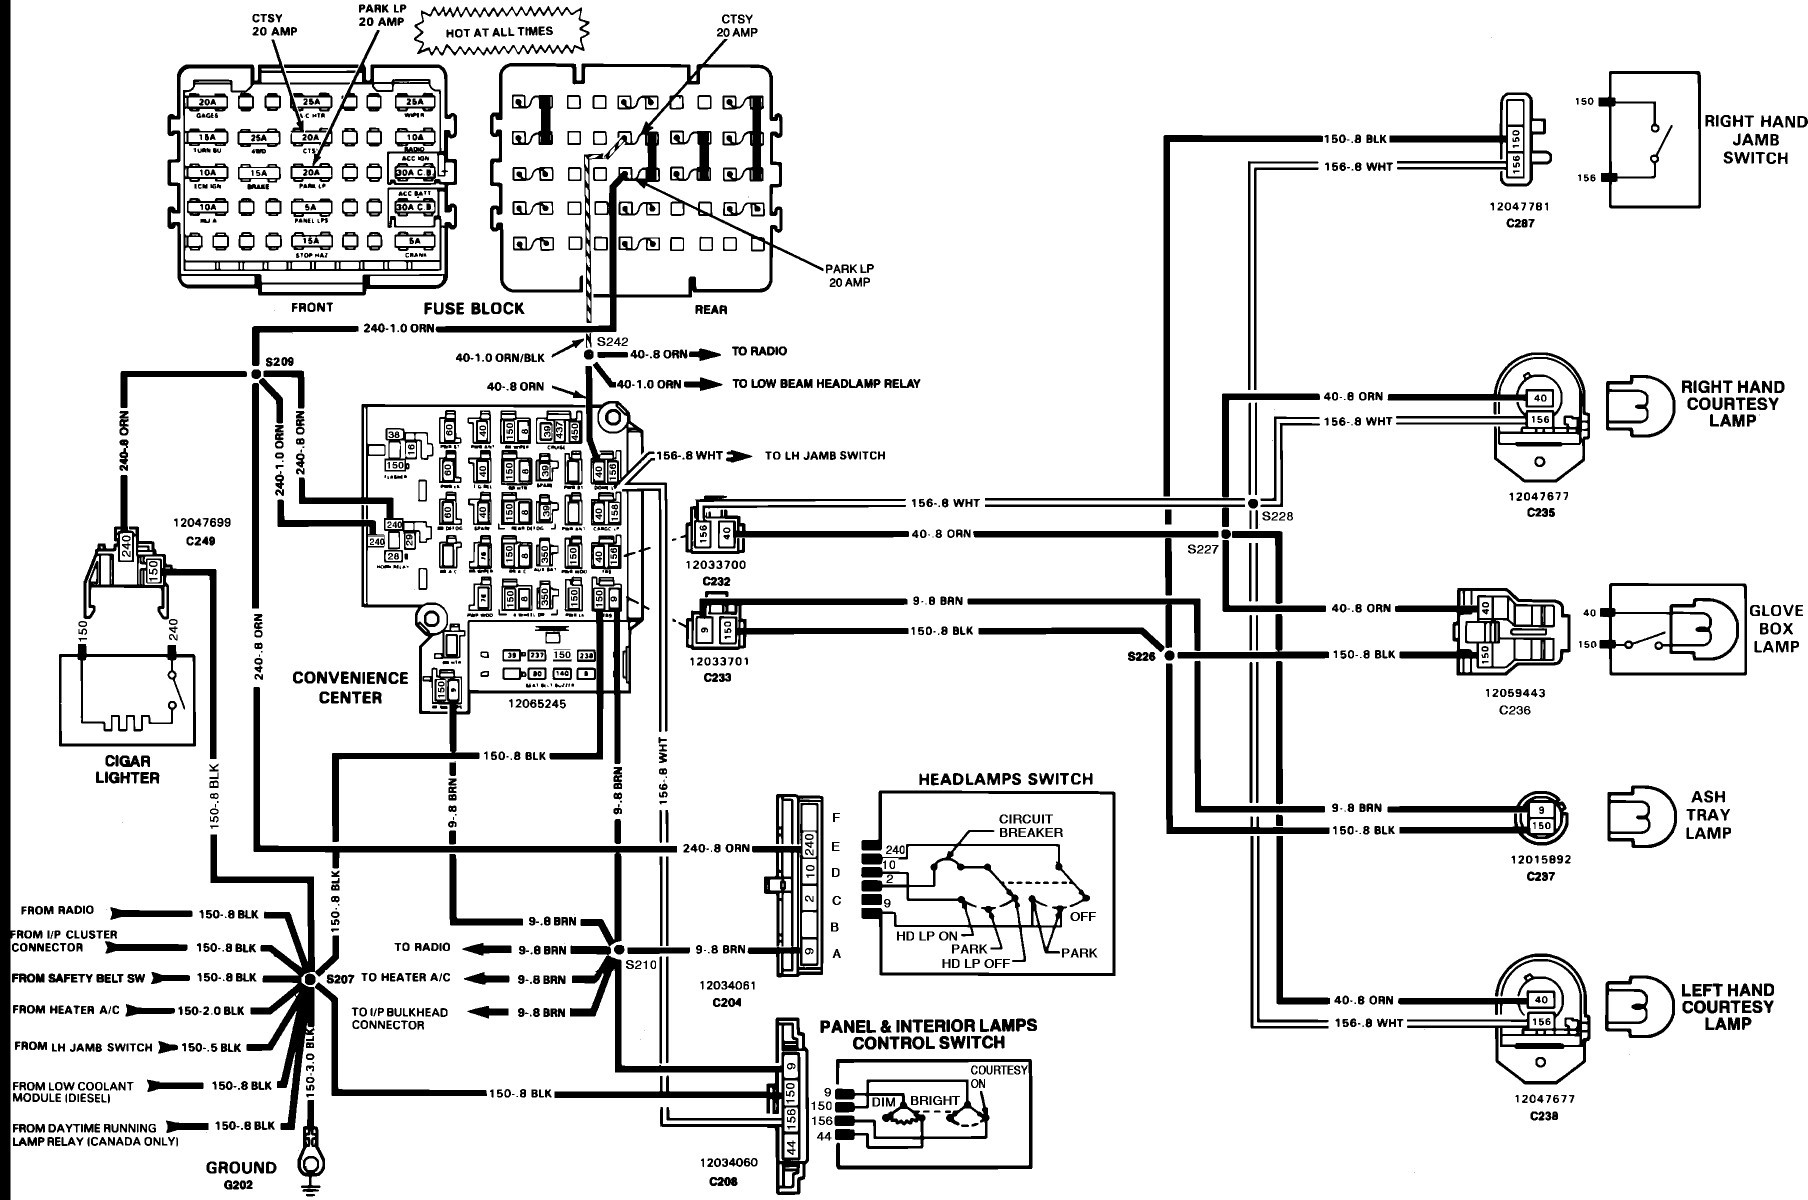 1989 S10 Wiring Diagram | Wiring Schematic Diagram  S Air Conditioner Wiring Diagram on 1989 s10 headlights, 1997 chevy s10 engine diagram, 1989 s10 fuel pump, 1989 s10 engine, 1989 s10 radio, 1989 s10 frame, 1989 s10 ignition switch, 1989 s10 timing, 1989 s10 ford, 1989 s10 speedometer, 1989s 10 charging system diagram, 1989 s10 antenna, 1989 s10 seats, 1989 s10 exhaust, 1989 s10 transmission, 1989 s10 door, 1989 s10 starter, 1989 s10 parts, 1989 s10 v8 wiring, s10 electrical diagram,